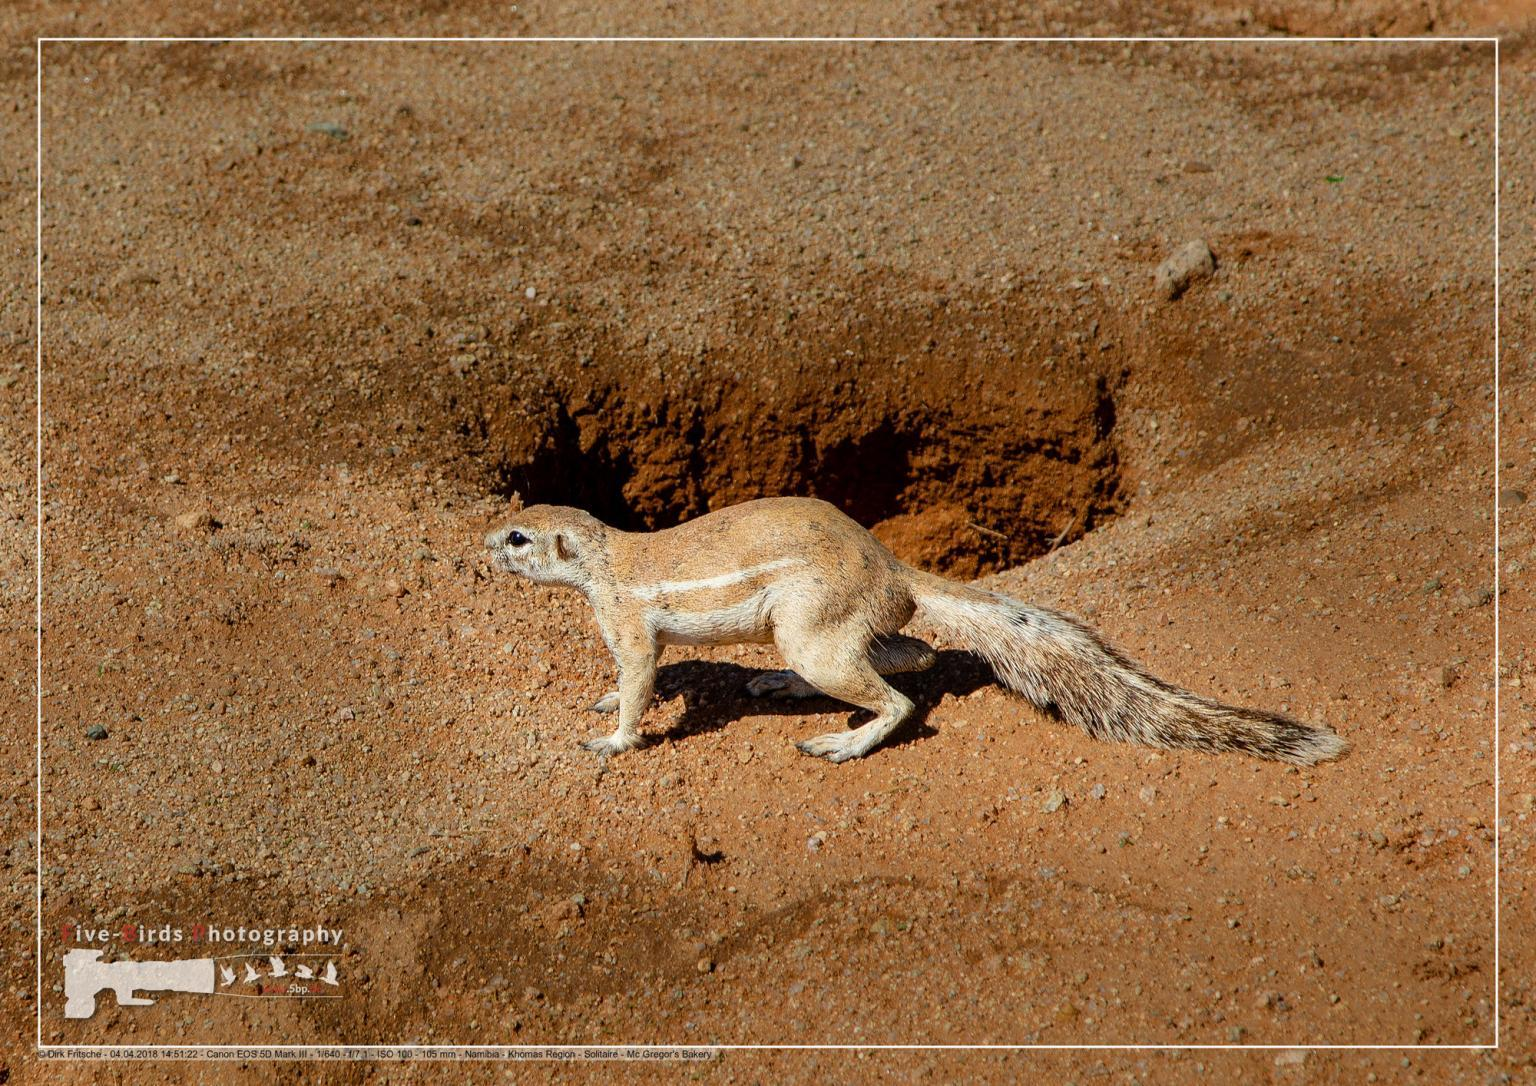 Ground squirrel near the town of Solitaire in the namib desert in Namibia